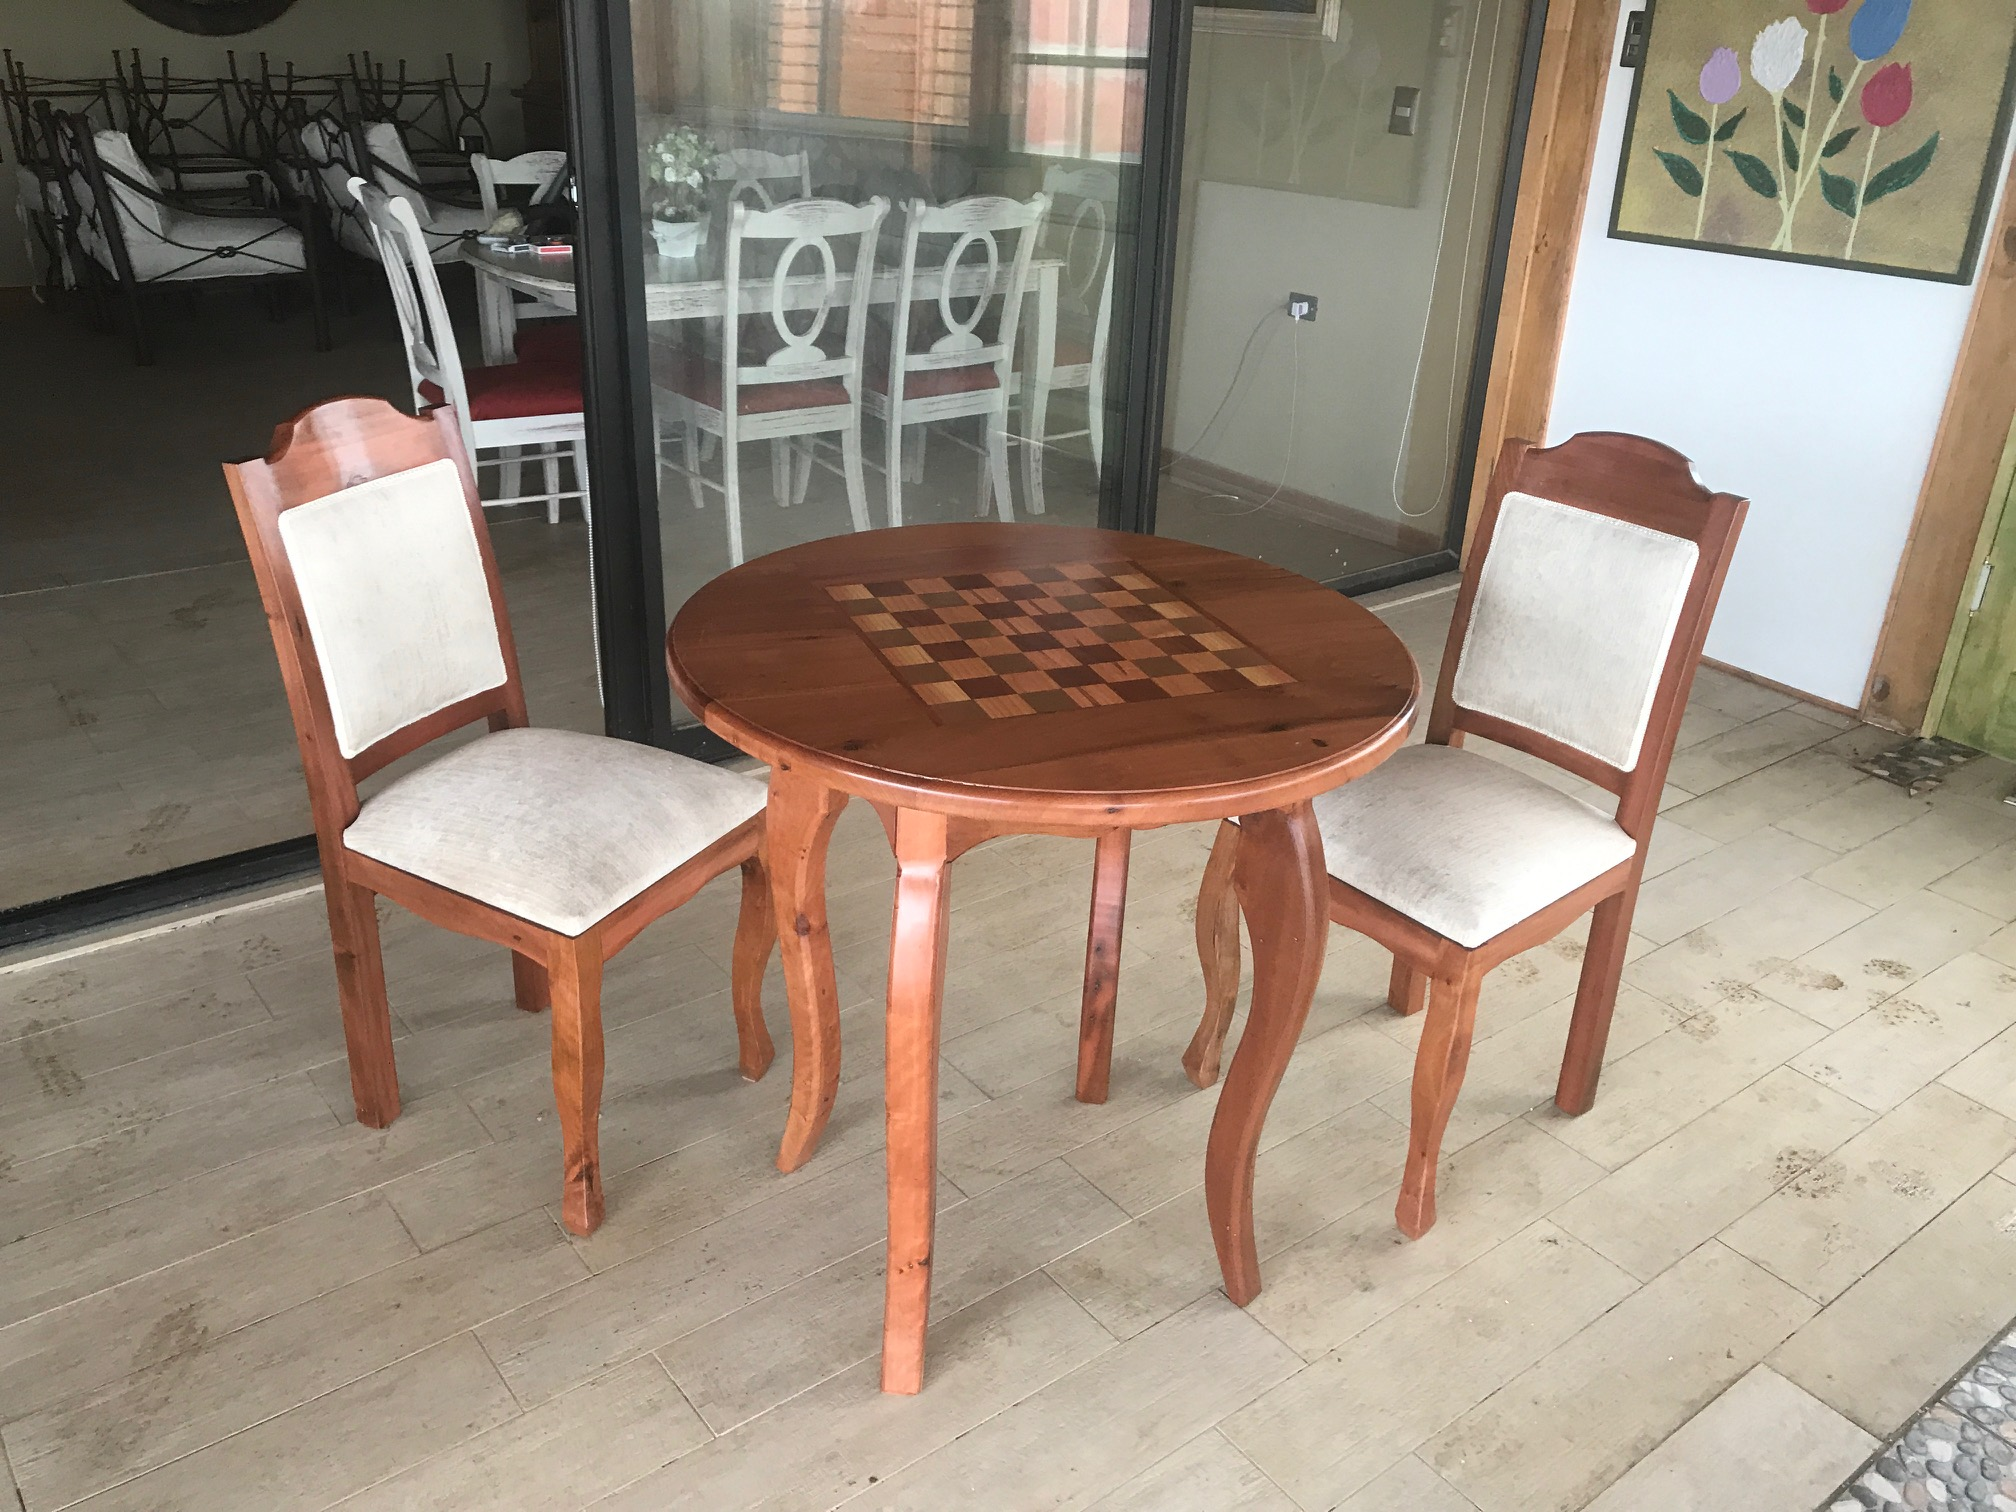 Comedor madera roble 2 sillas roble clasico normando for Sillas comedor roble